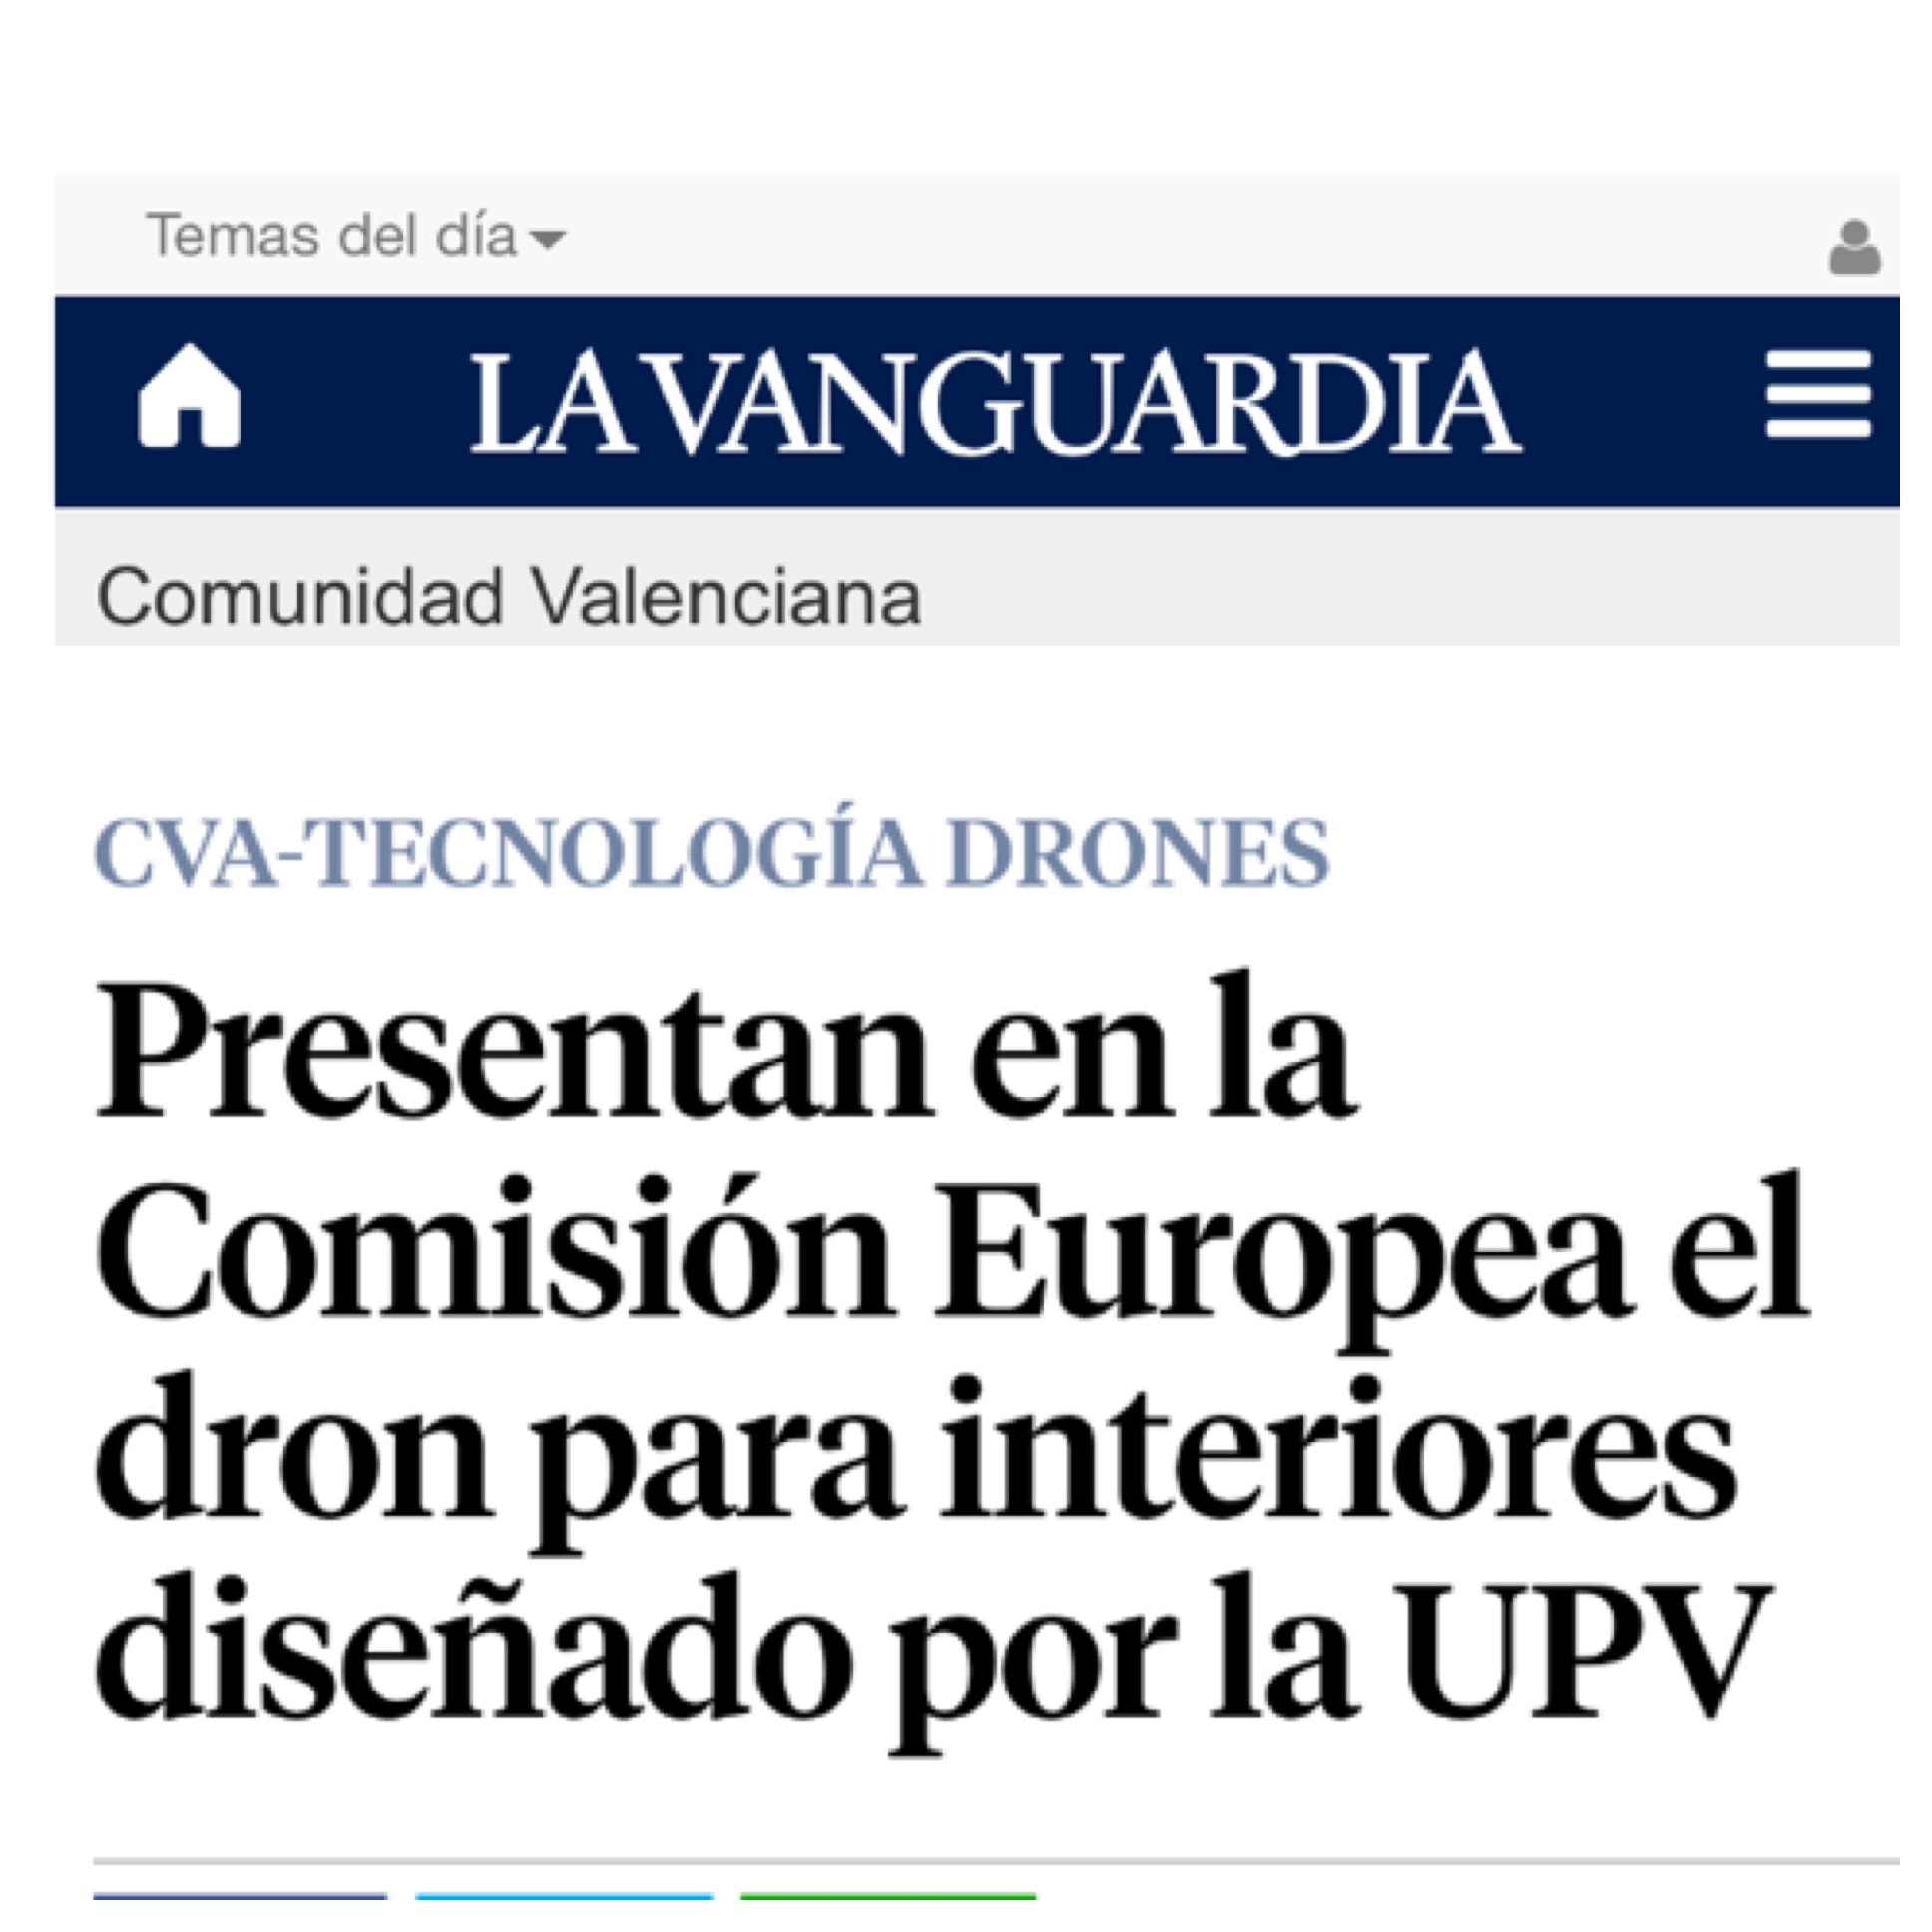 AiRT in La Vanguardia